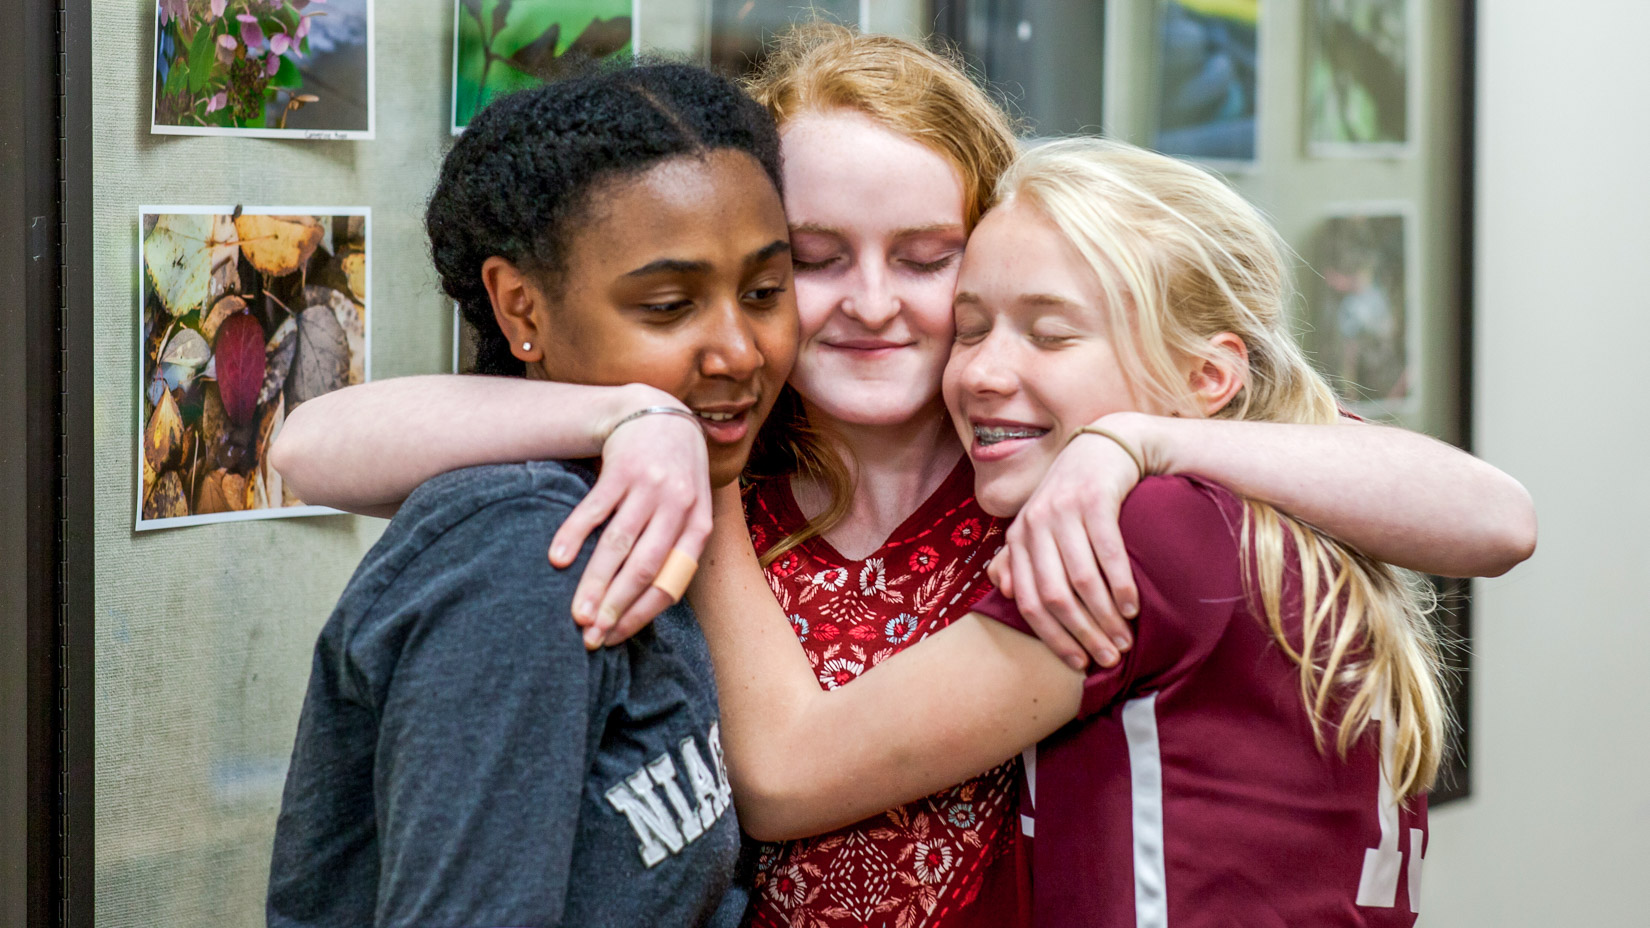 Students hugging and smiling